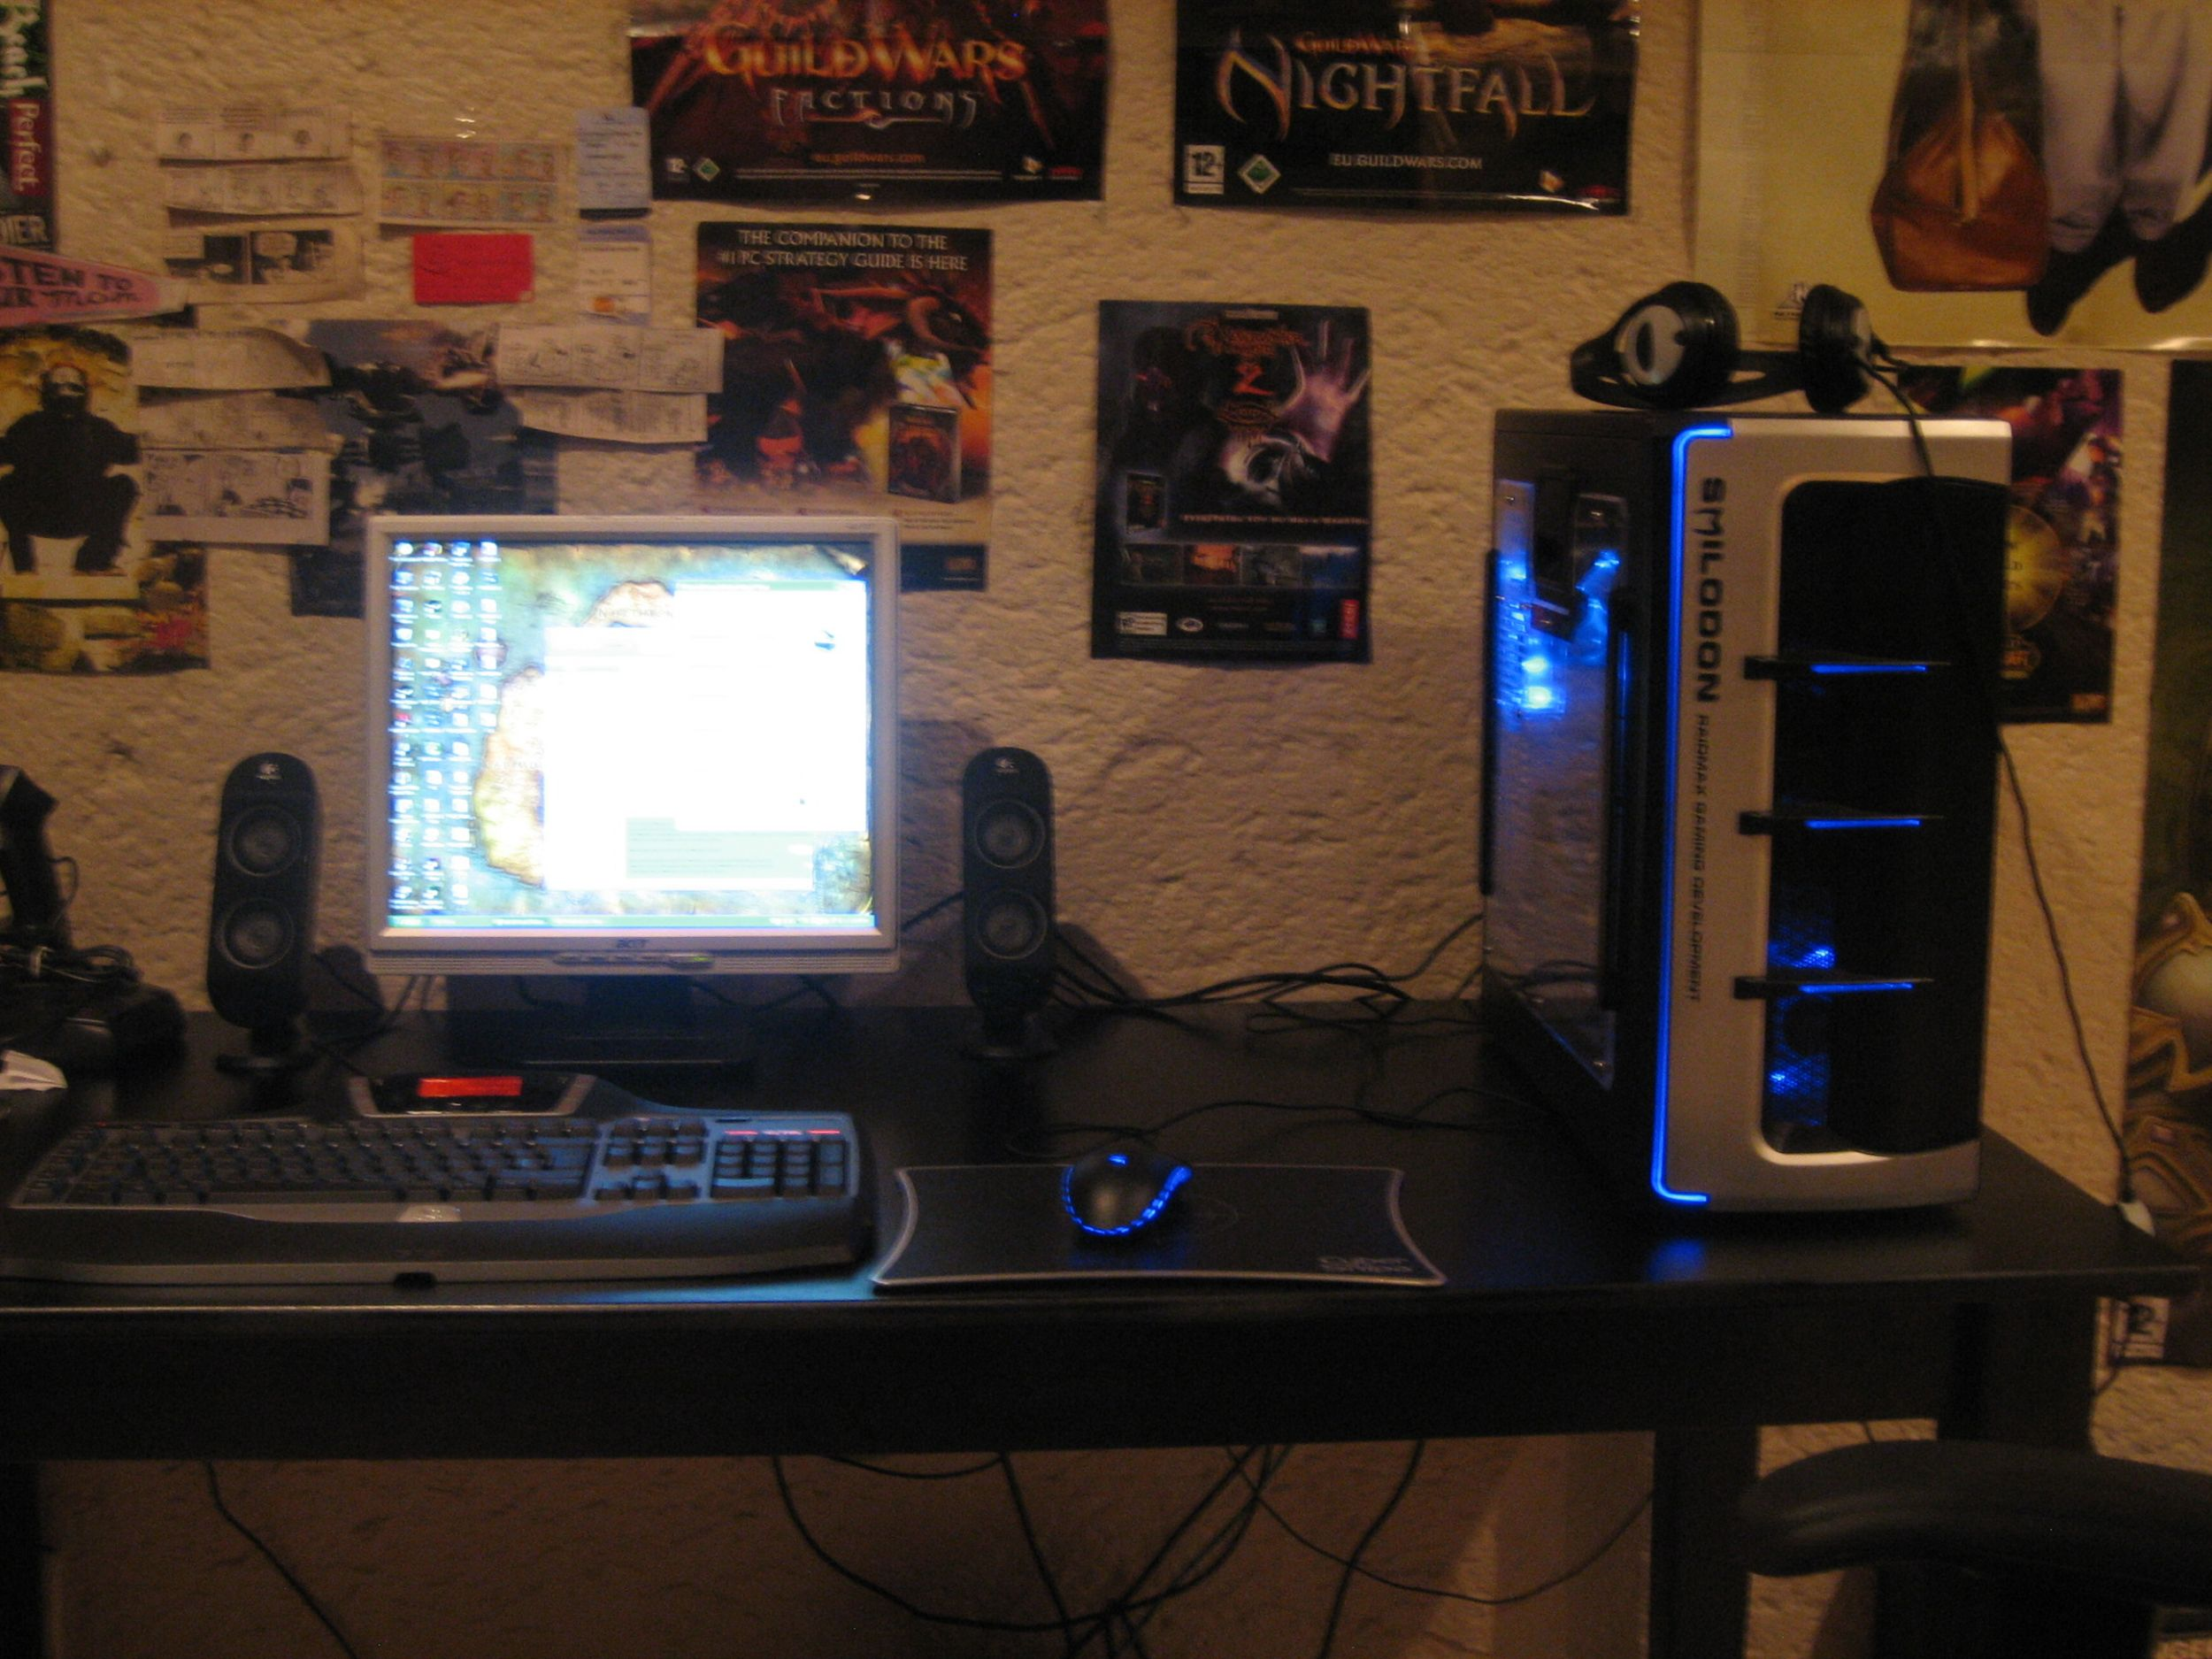 Just some photos too show you my gaming Rig =)